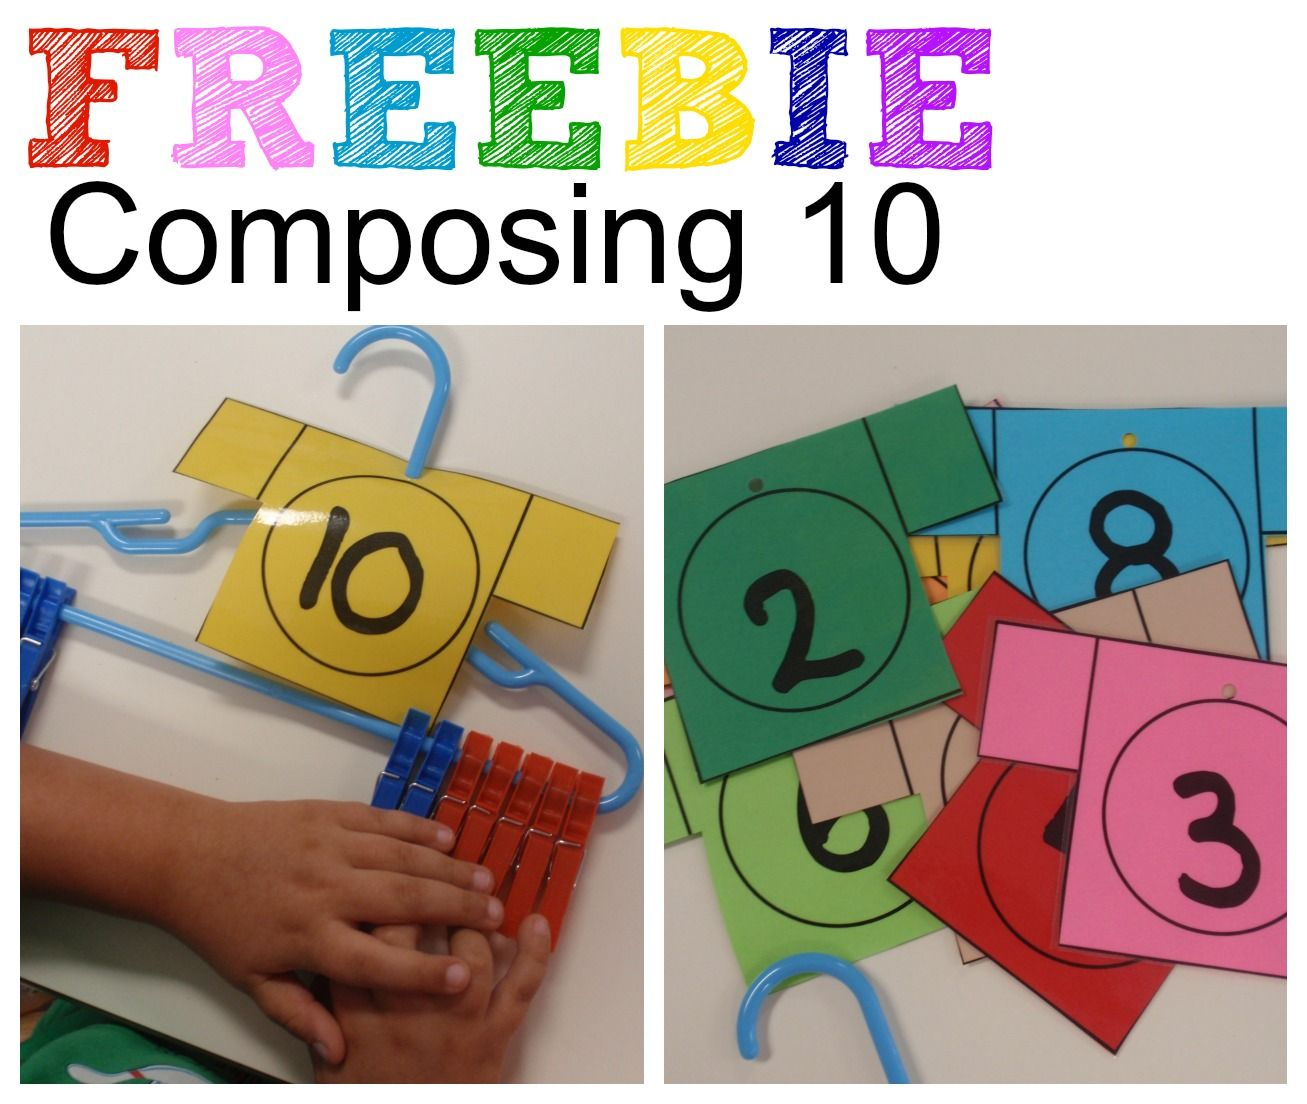 Composing 10 With Hanger And Clothespins